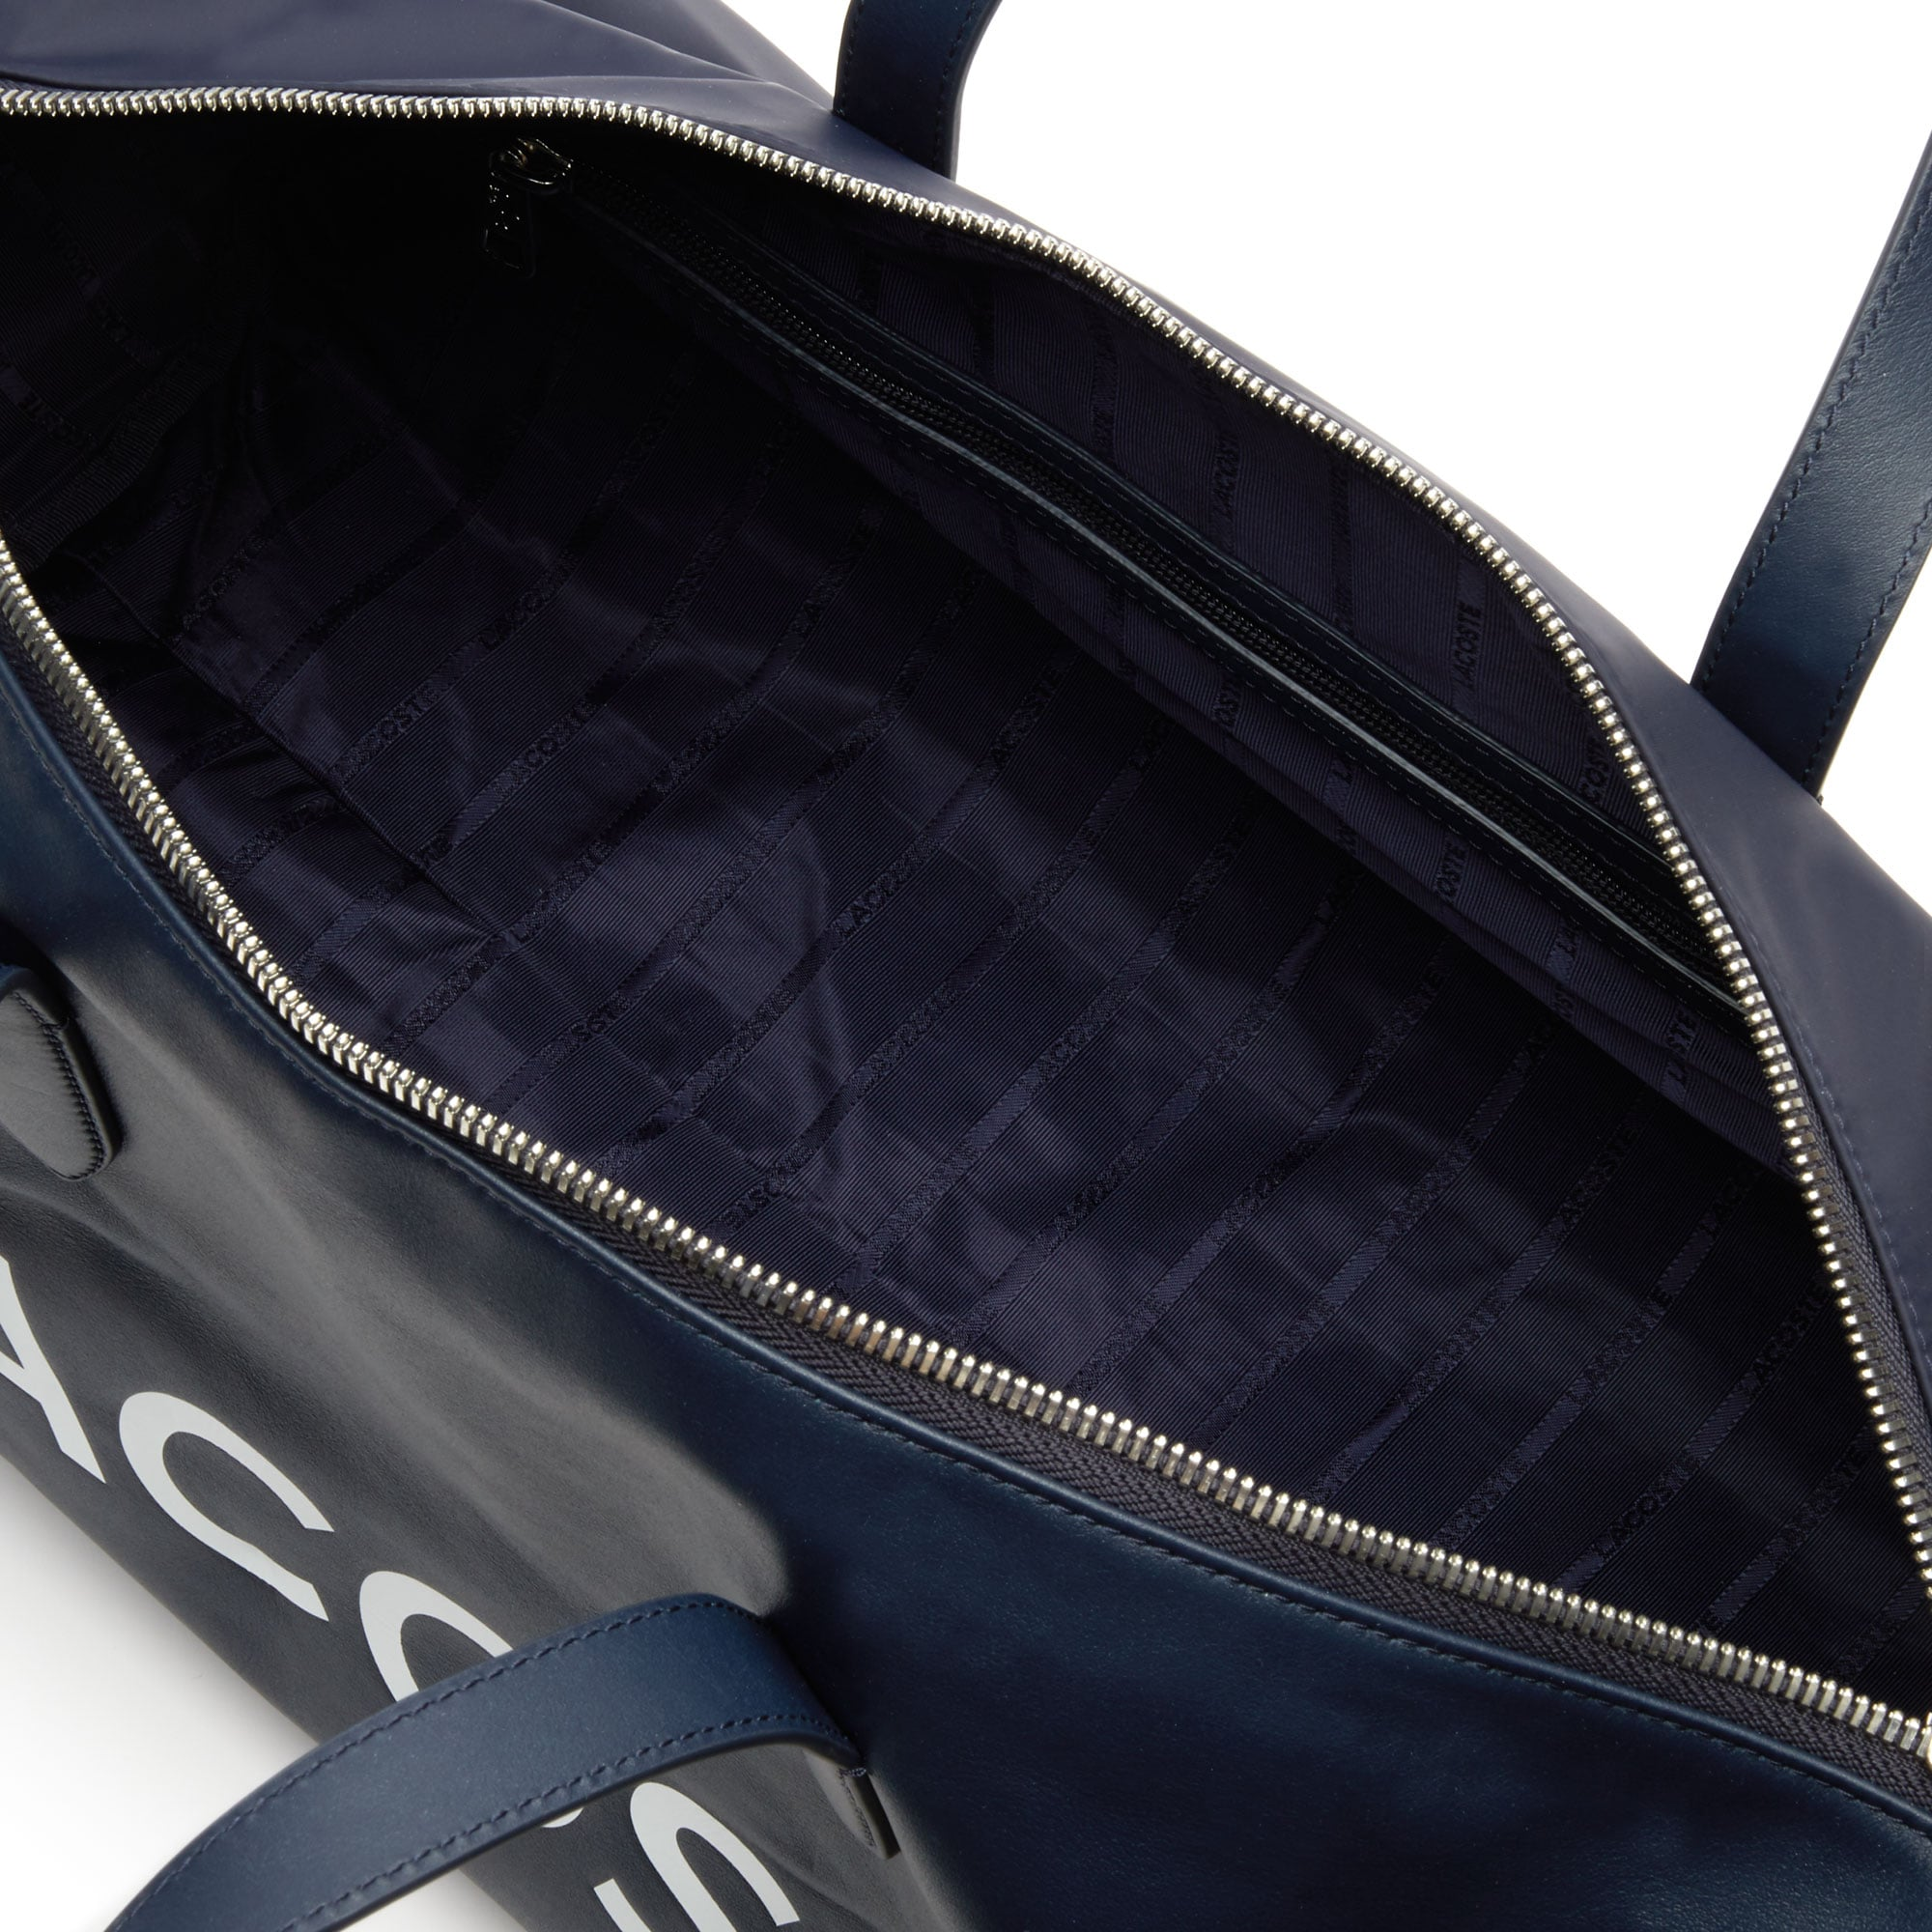 Men's L.12.12 Signature Detachable Shoulder Strap Leather Duffel Bag